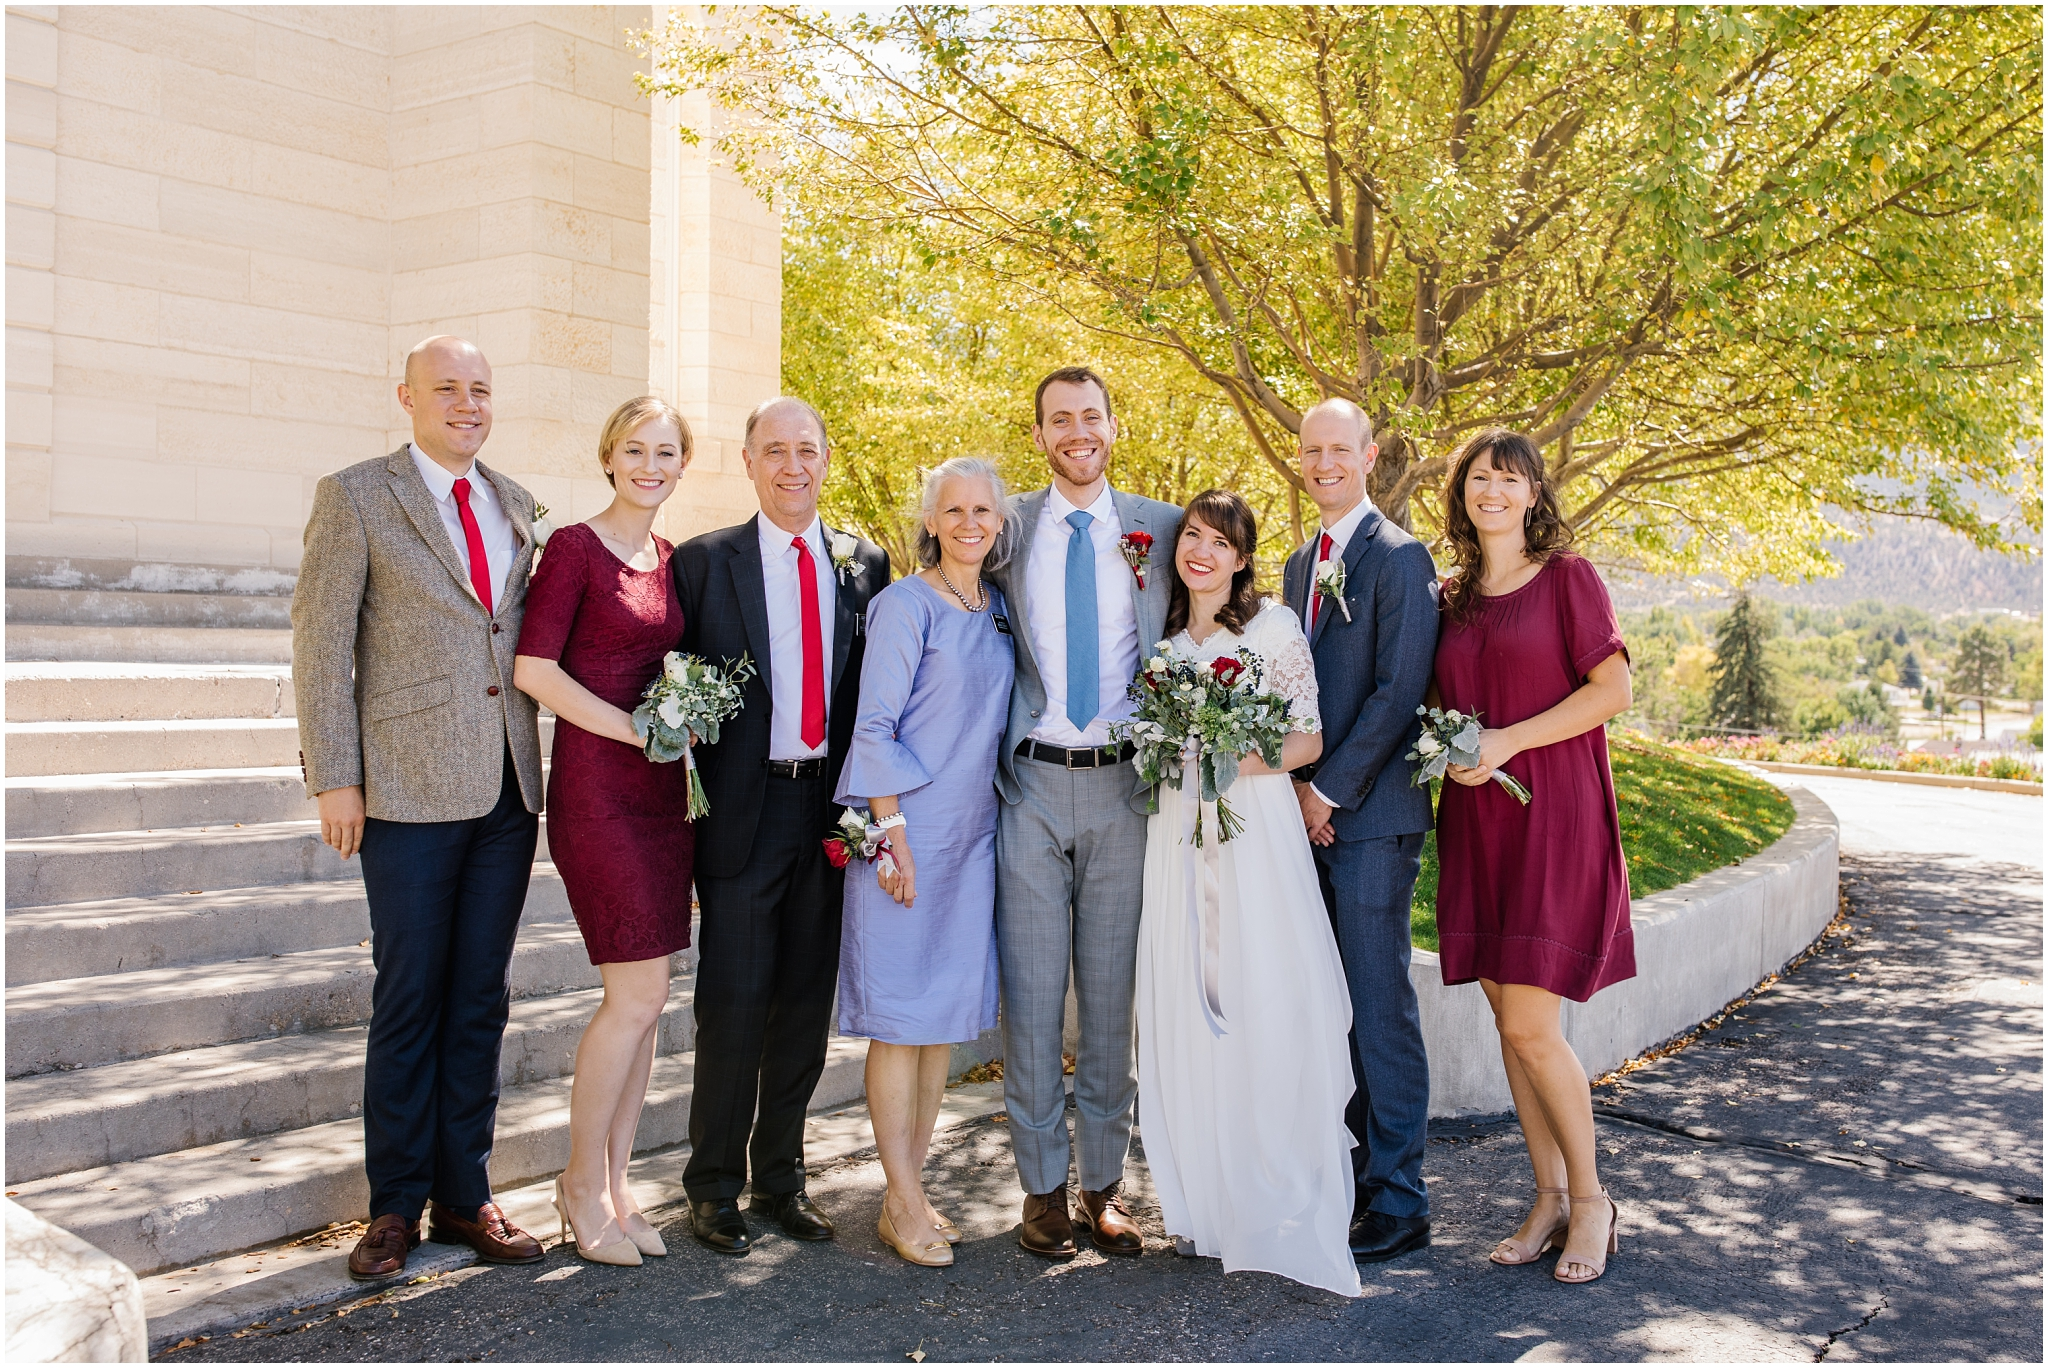 BrynneWinston-70_Lizzie-B-Imagery-Utah-Wedding-Photographer-Utah-County-Manti-Temple.jpg